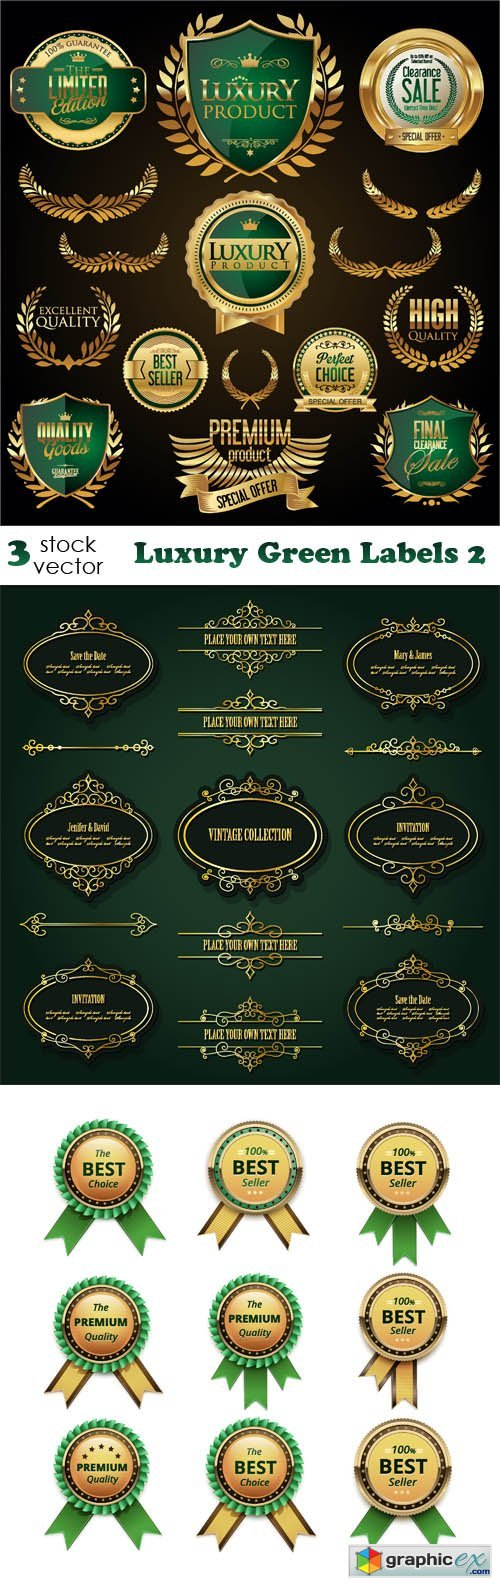 Luxury Green Labels 2